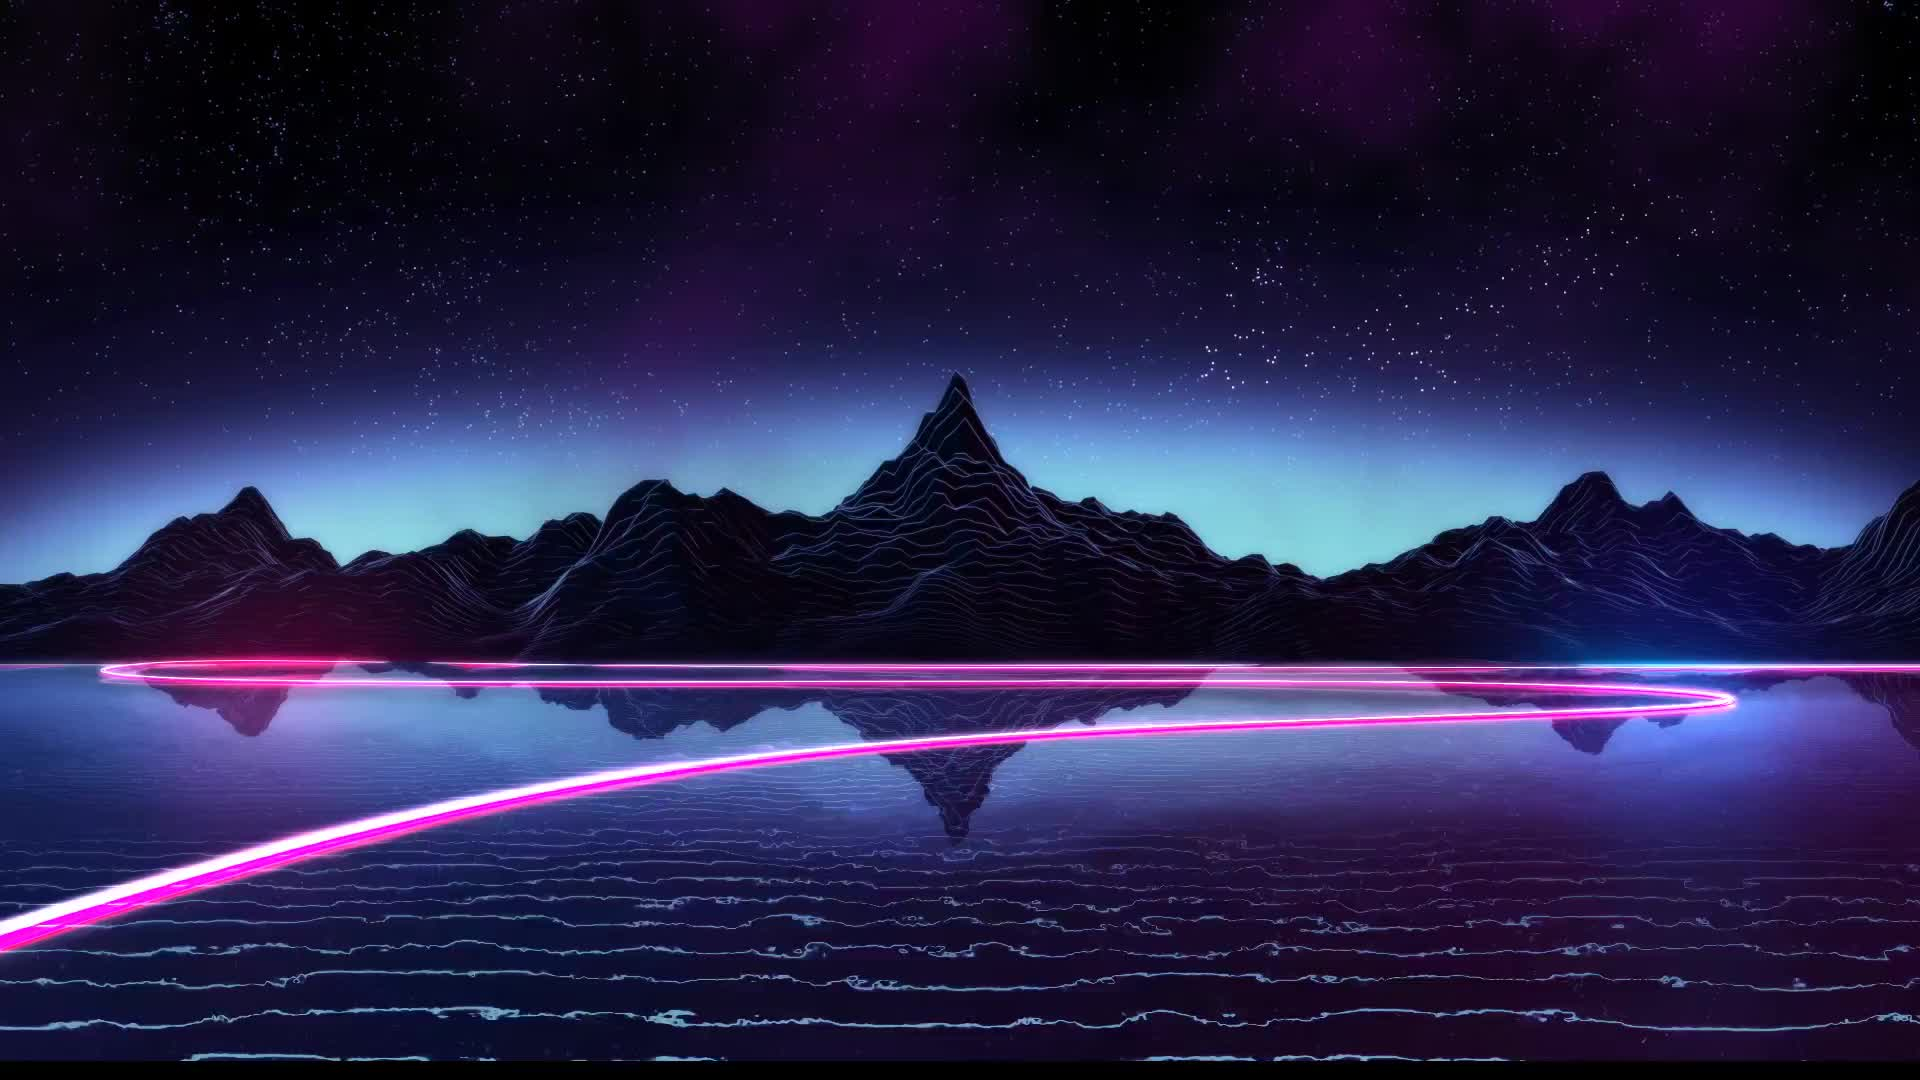 Synthwave gifs search search share on homdor - 4k moving wallpaper ...